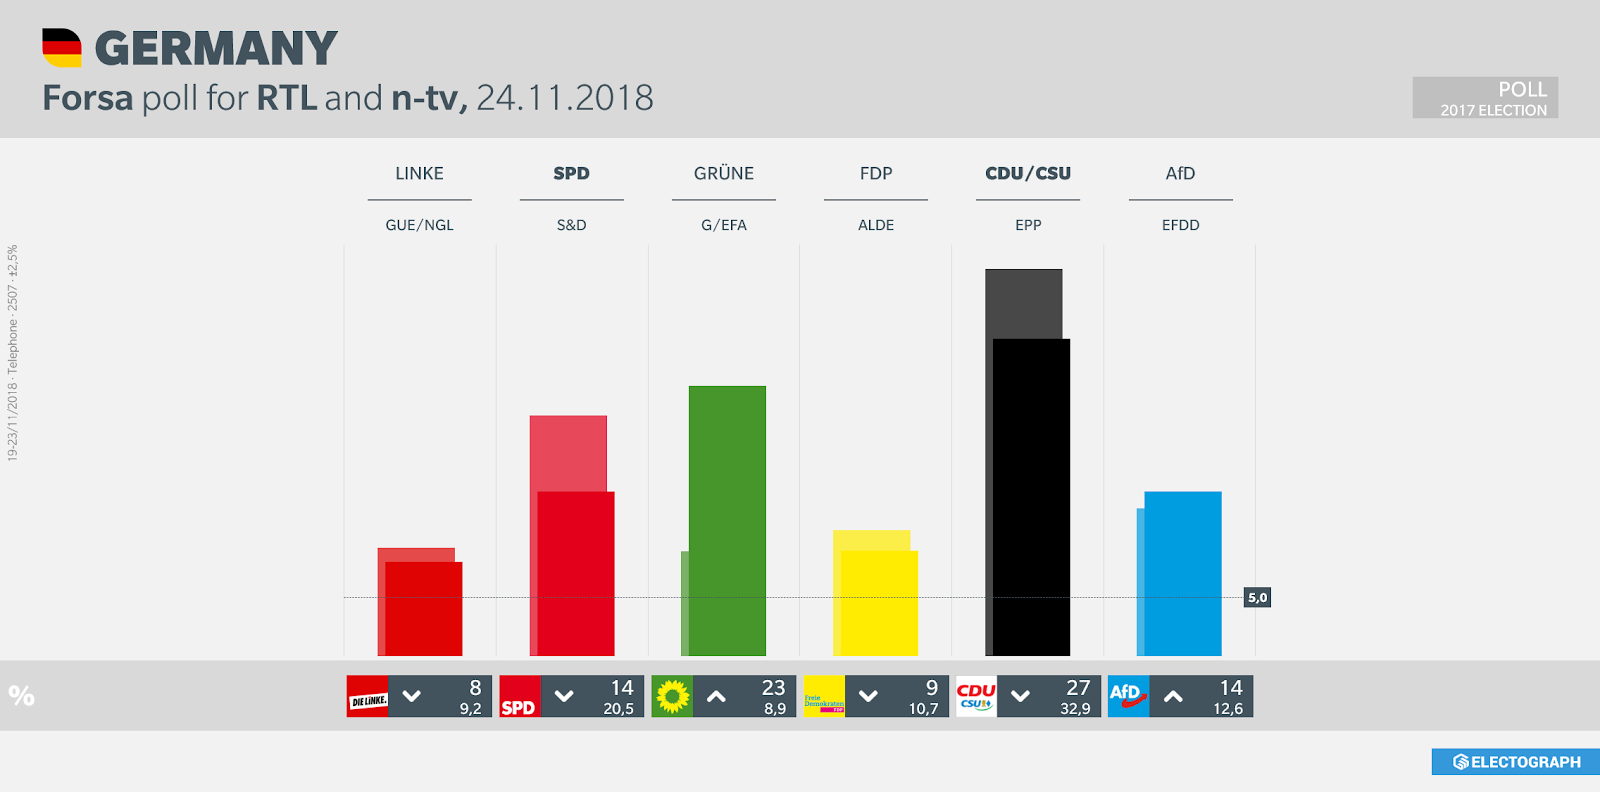 GERMANY: Forsa poll chart for RTL and n-tv, 24 November 2018